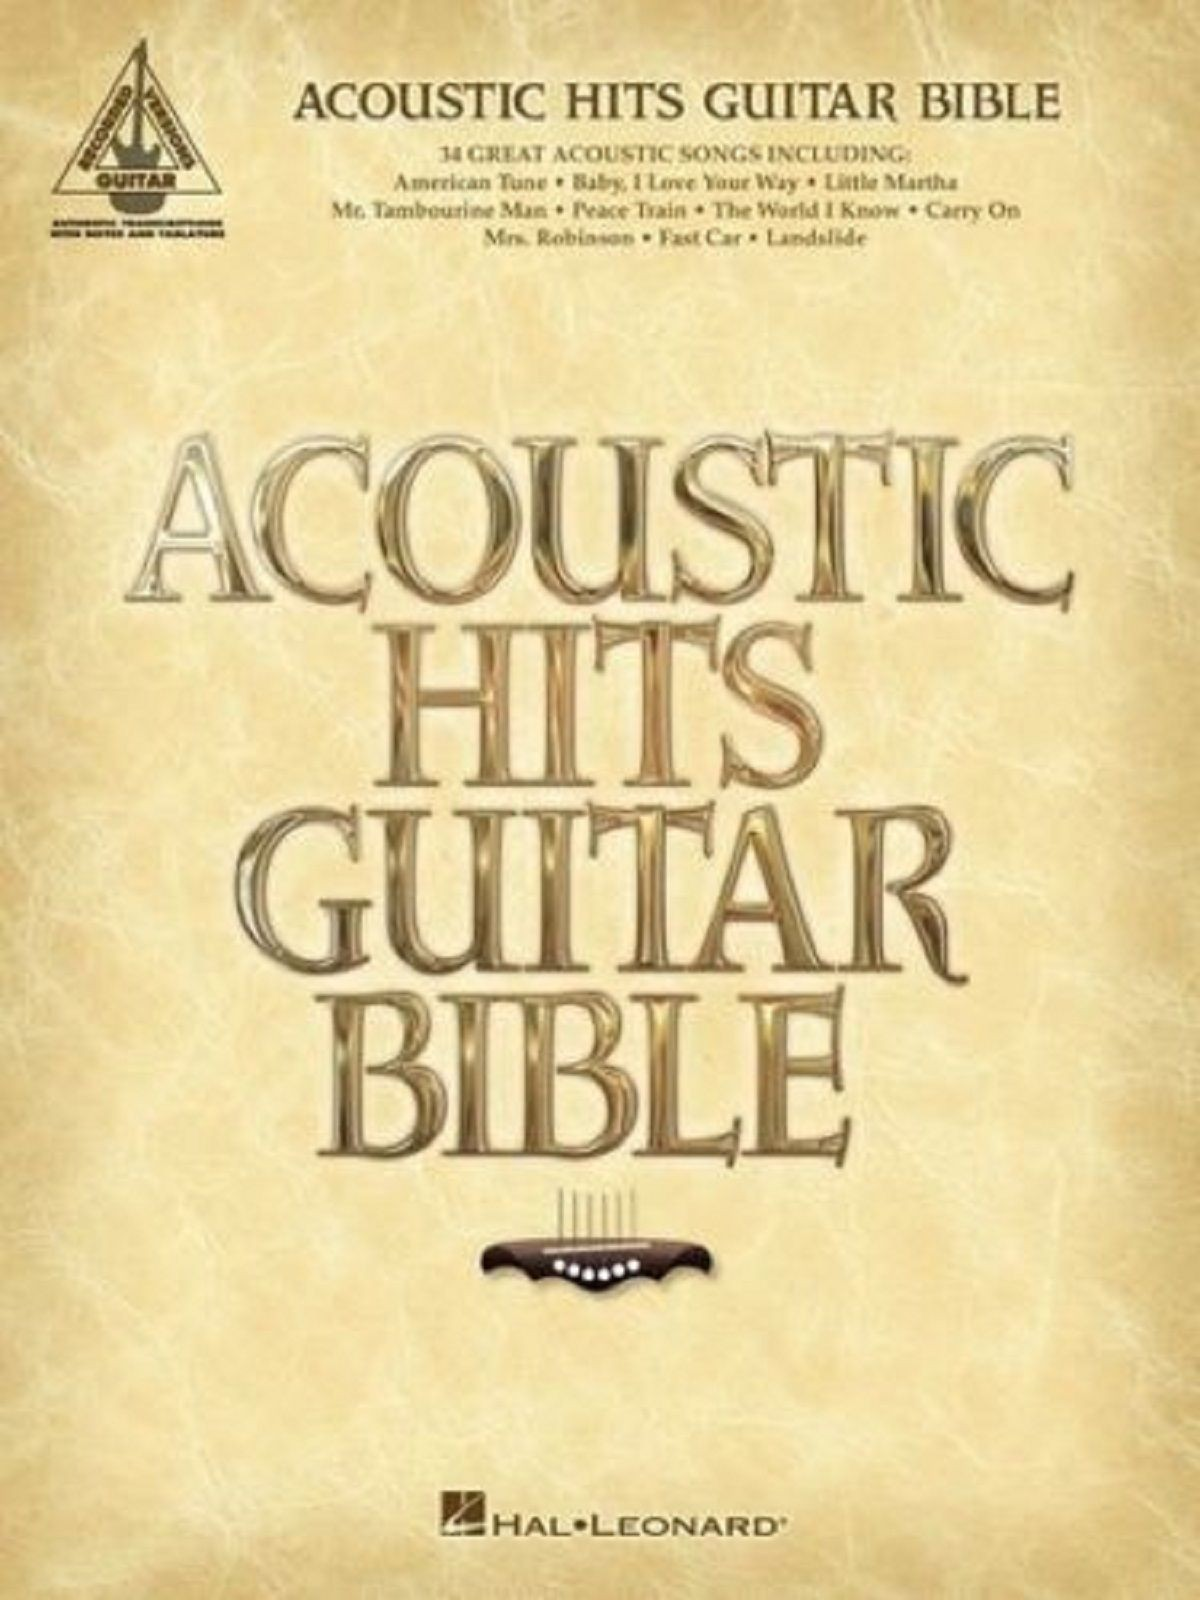 Acoustic Hits Guitar Bible Tab Notes Sheet Music 34 Great Songs Tunes Book S123